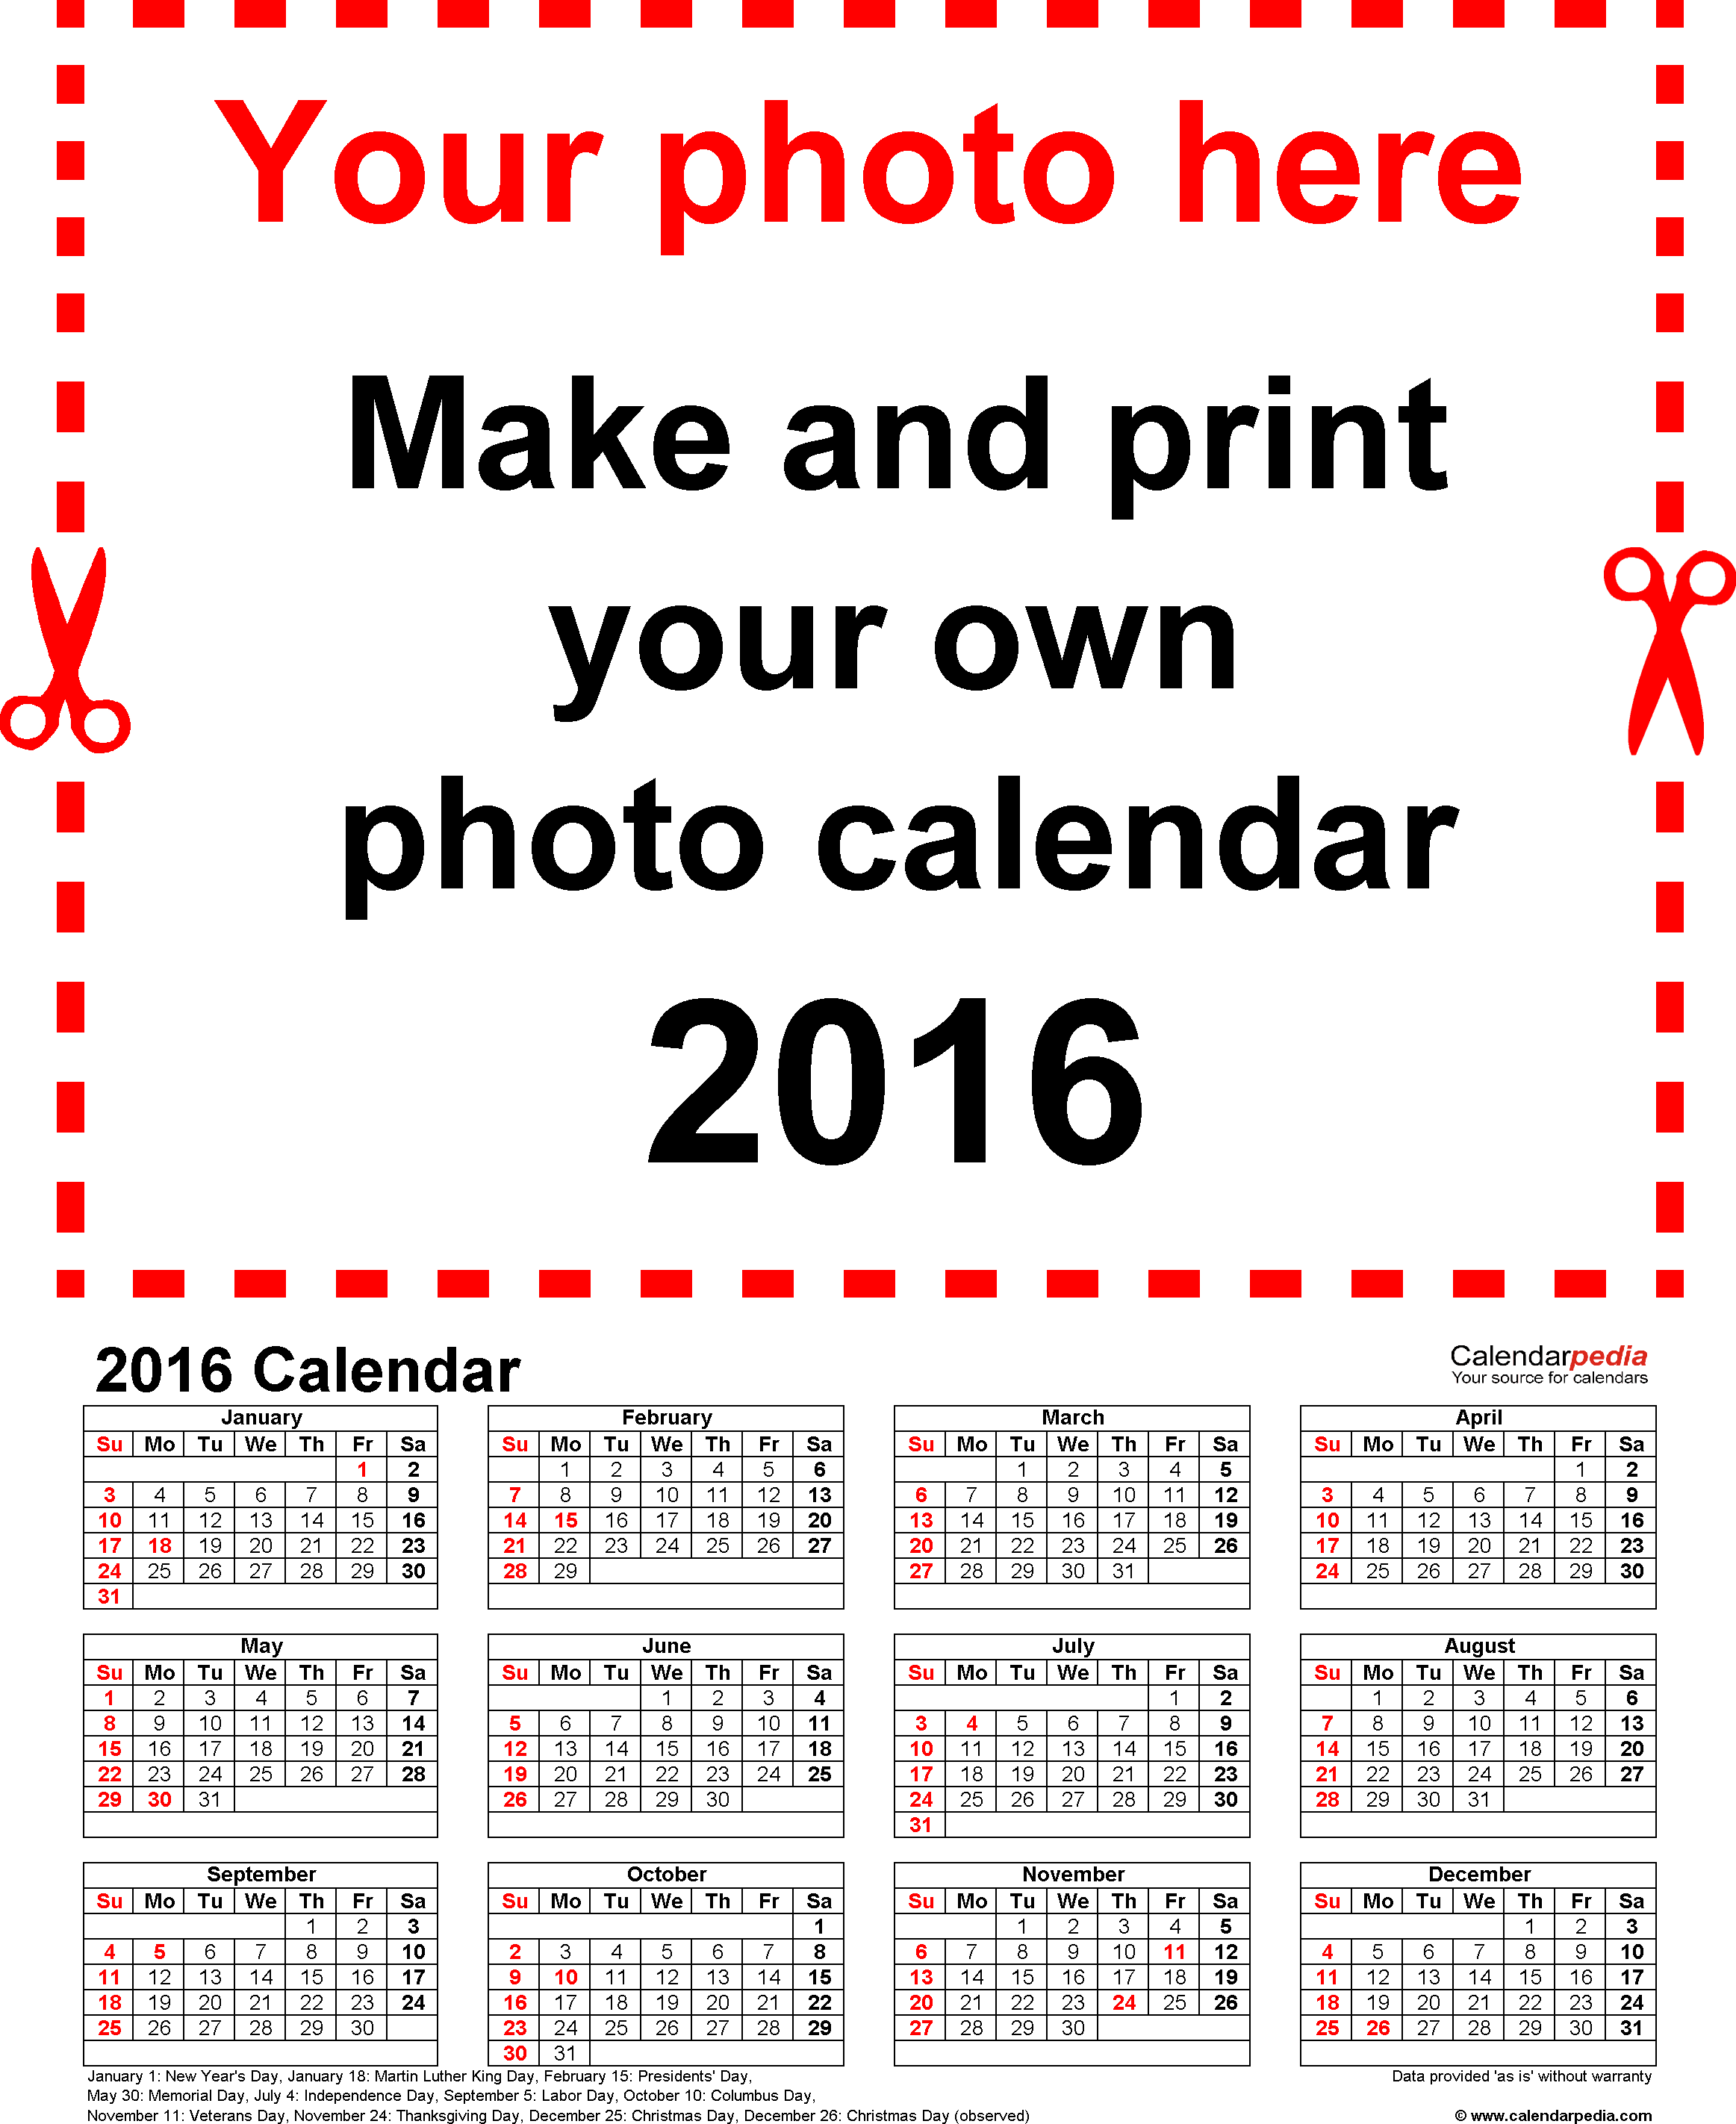 Photo calendar 2016 - free printable Word templates